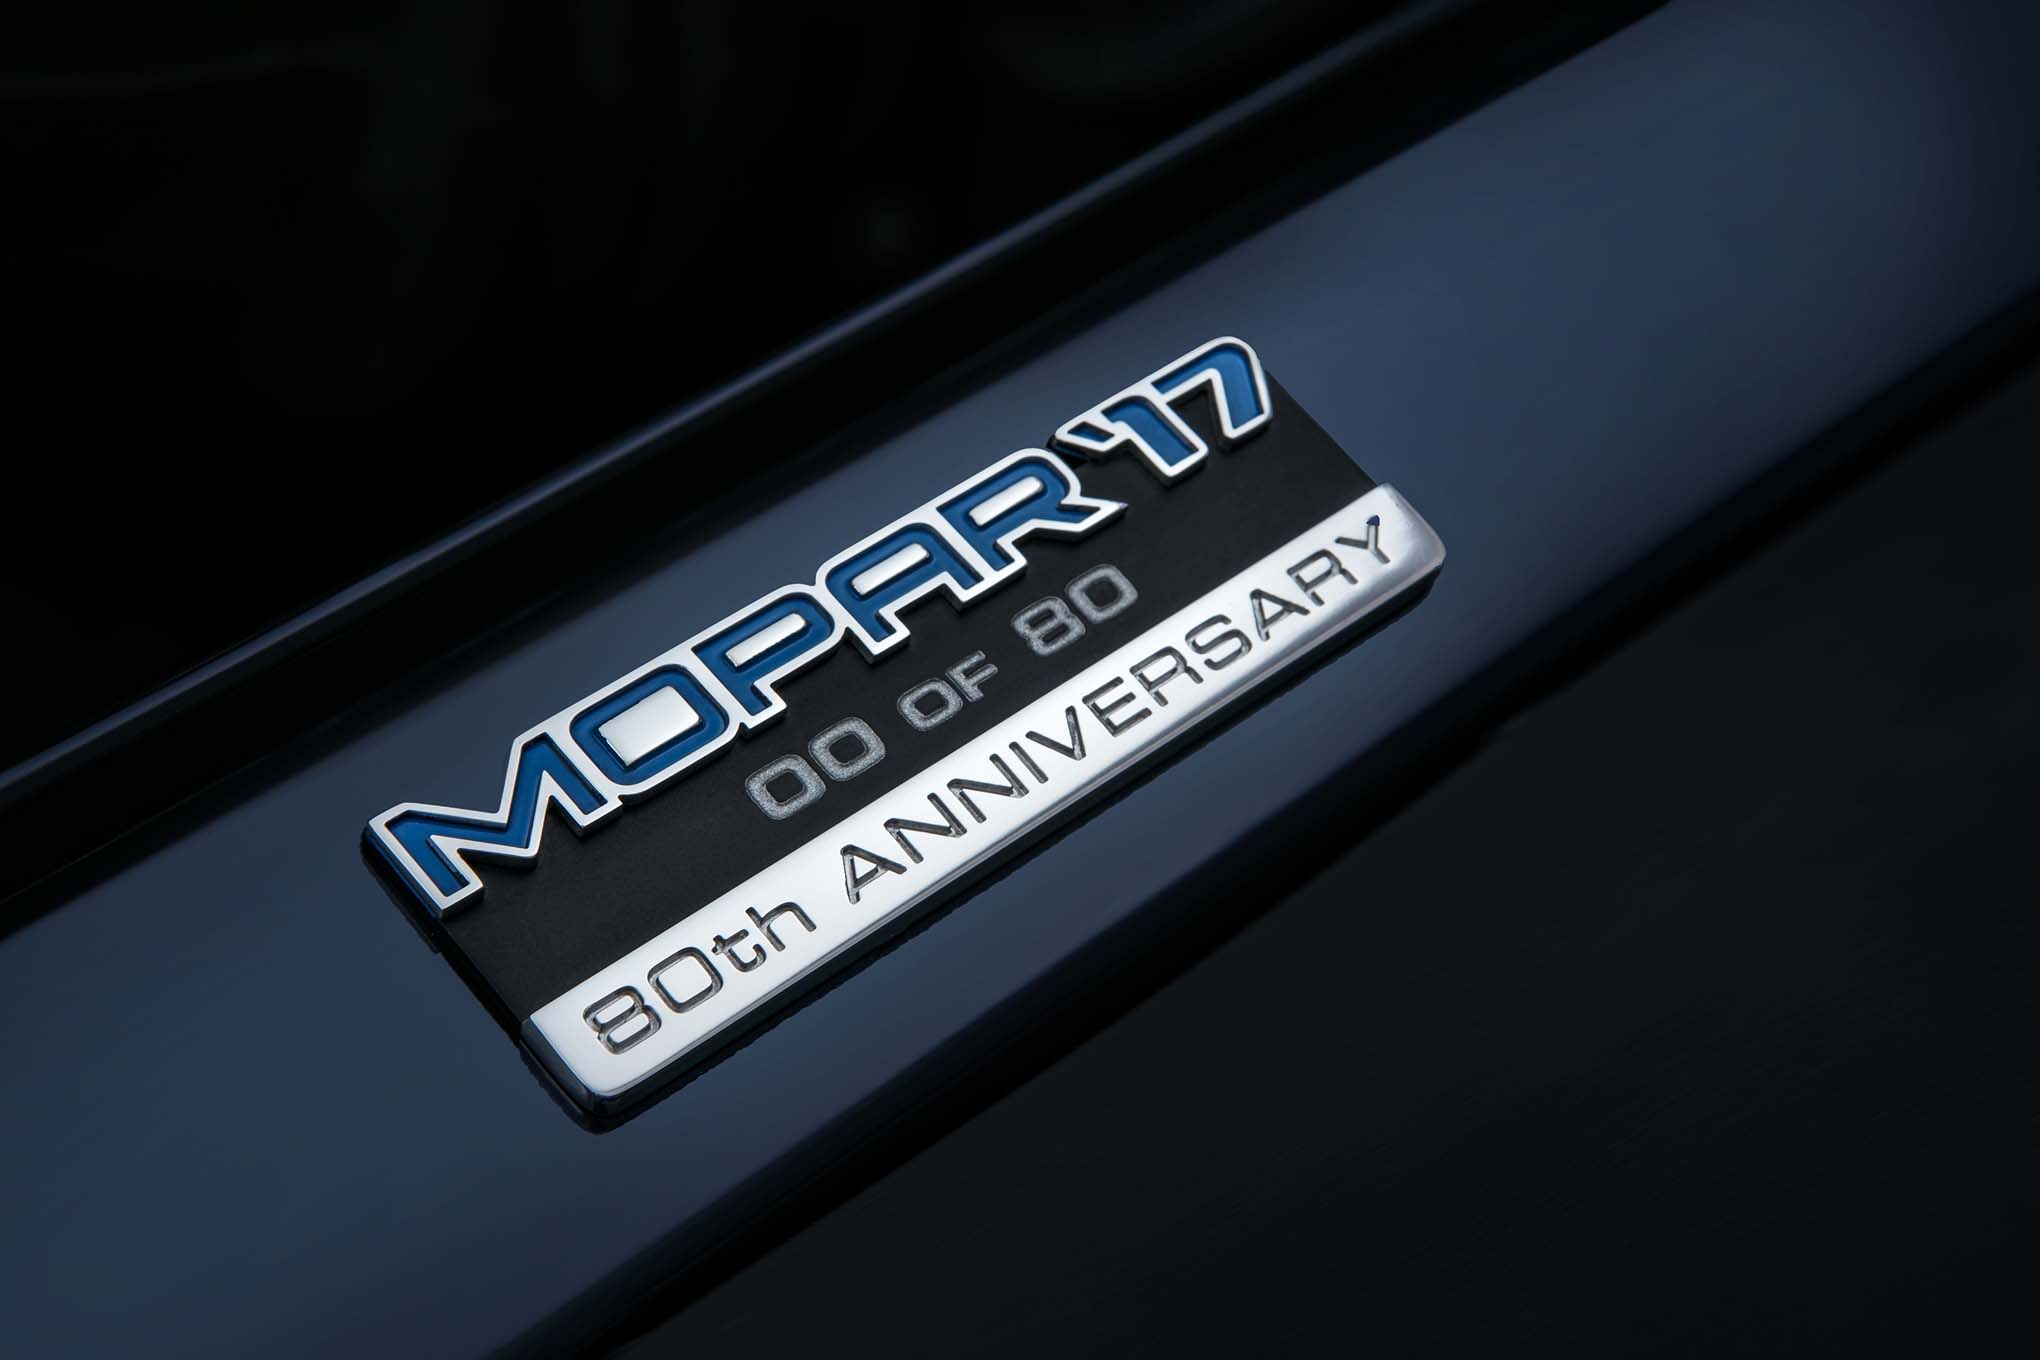 A special serialized Mopar '17 80th Anniversary badge is inclu